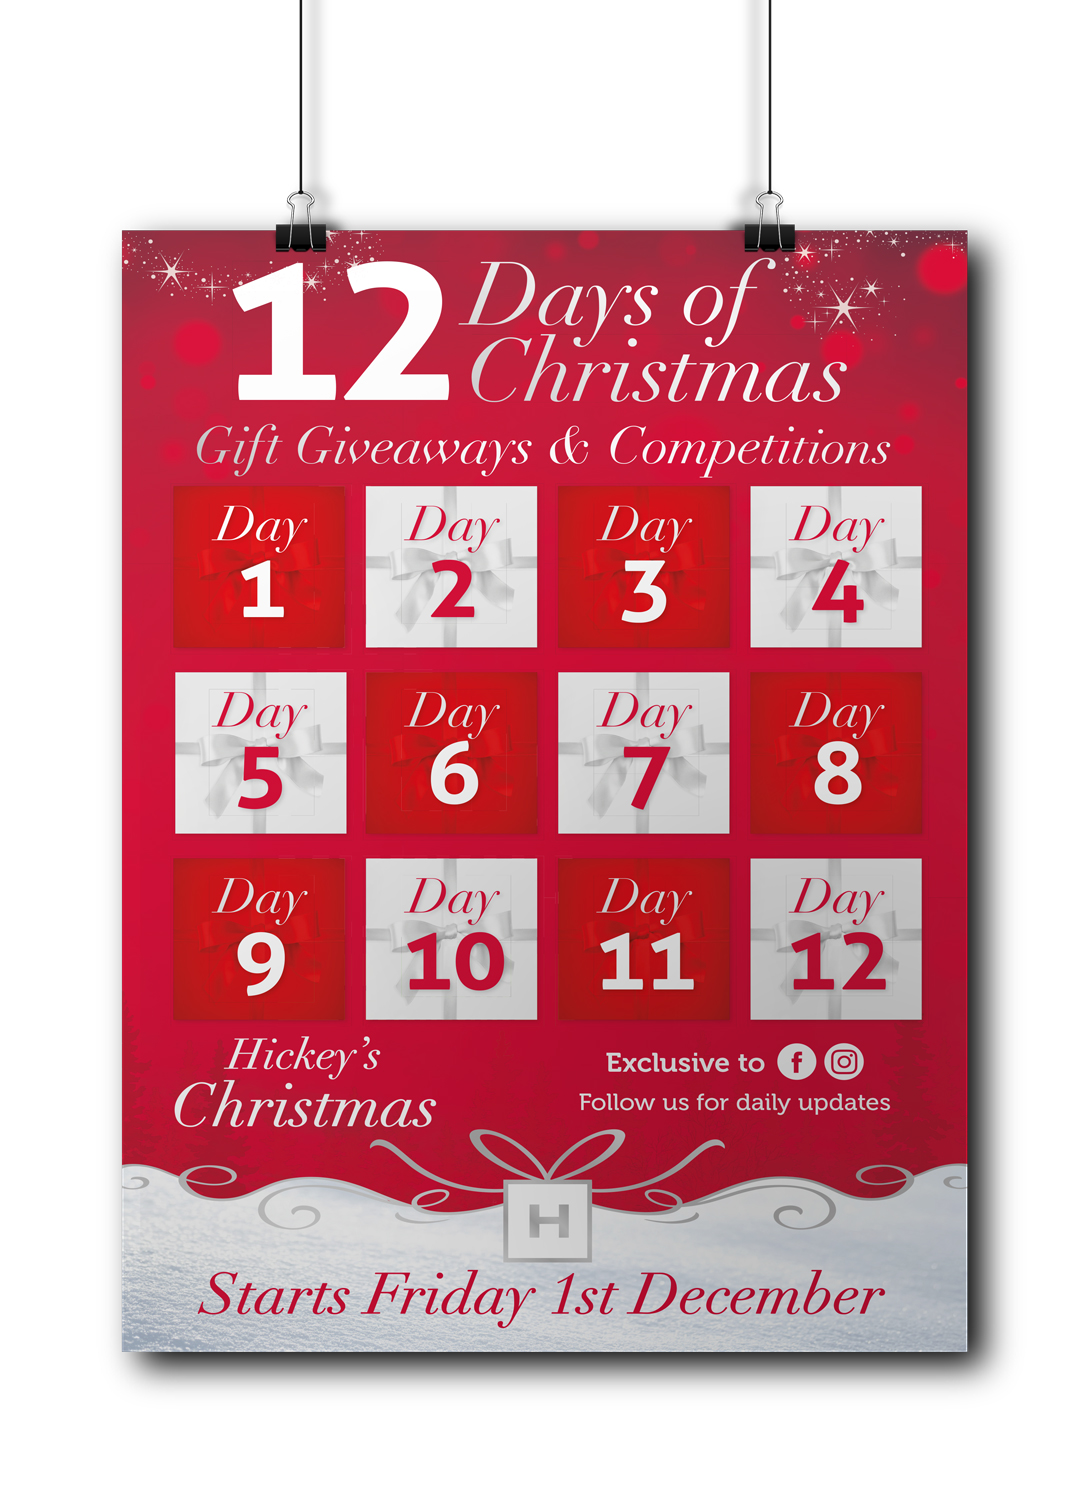 hickeys pharmacy 12 days of christmas a4 poster - 10 Days Of Christmas